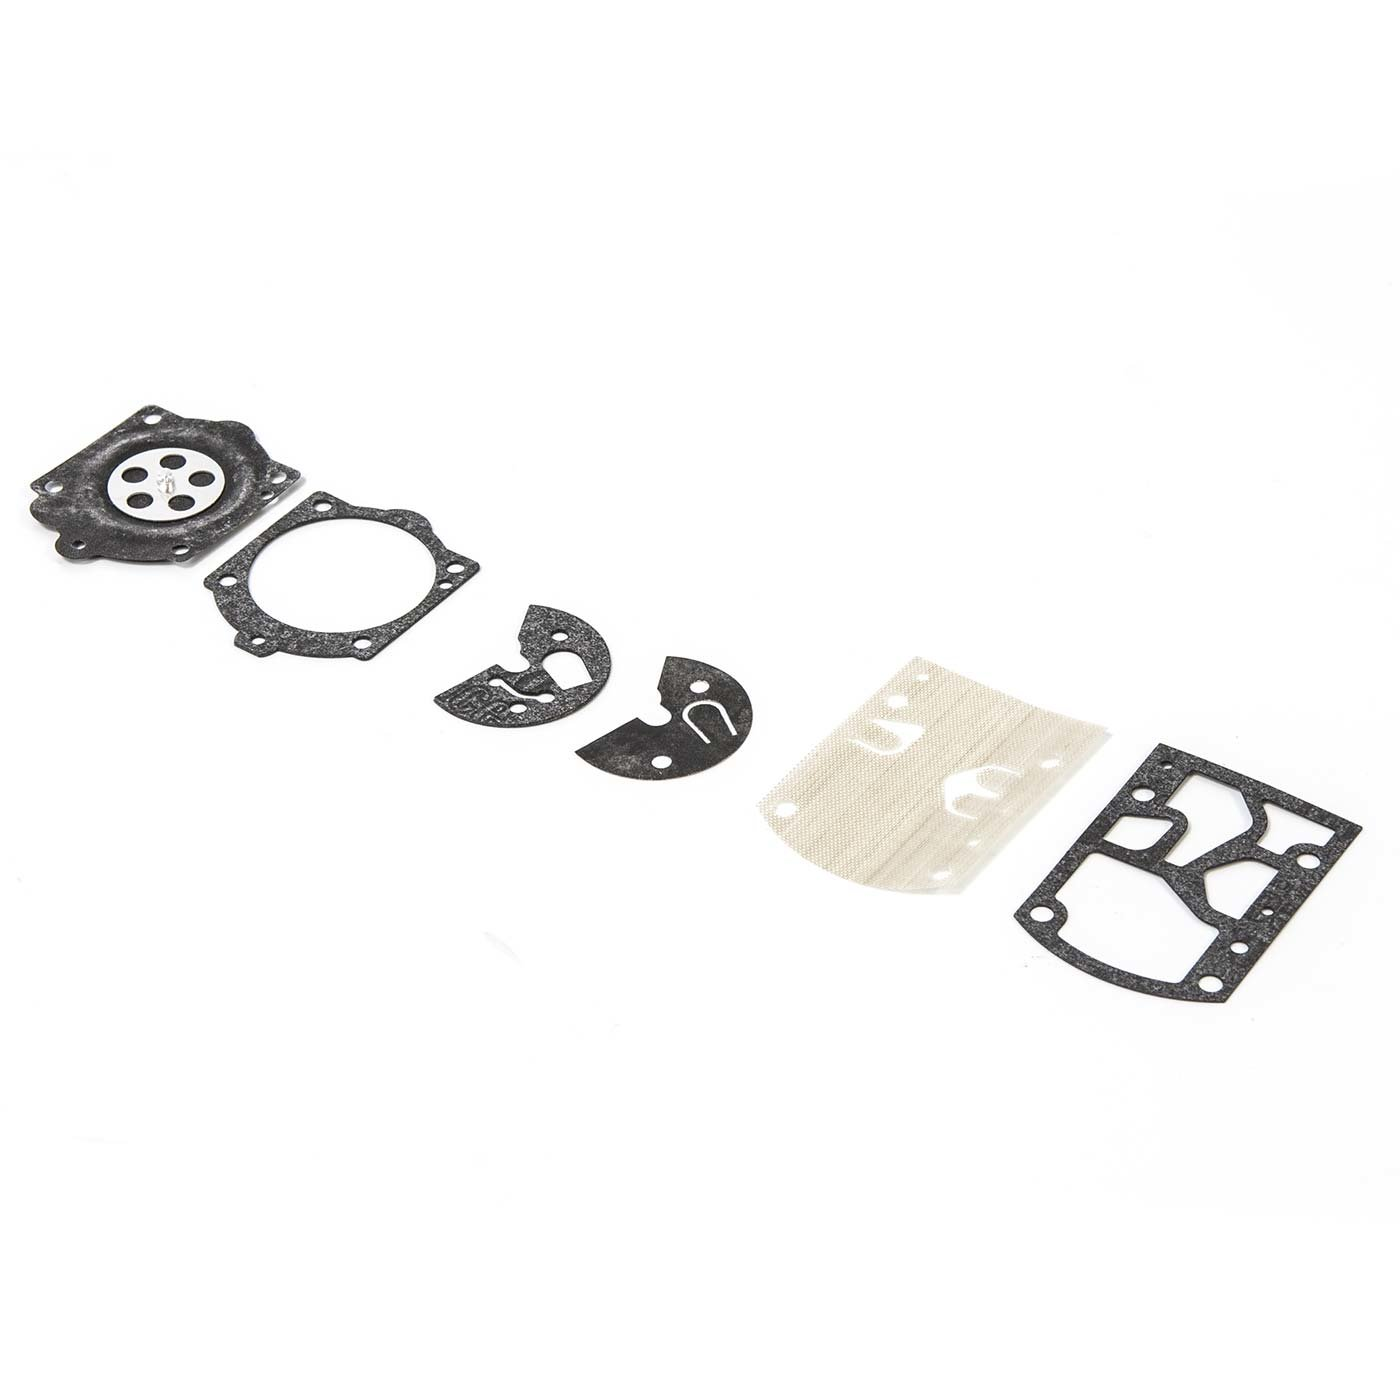 Carburetor diaphragm set DA-150/170